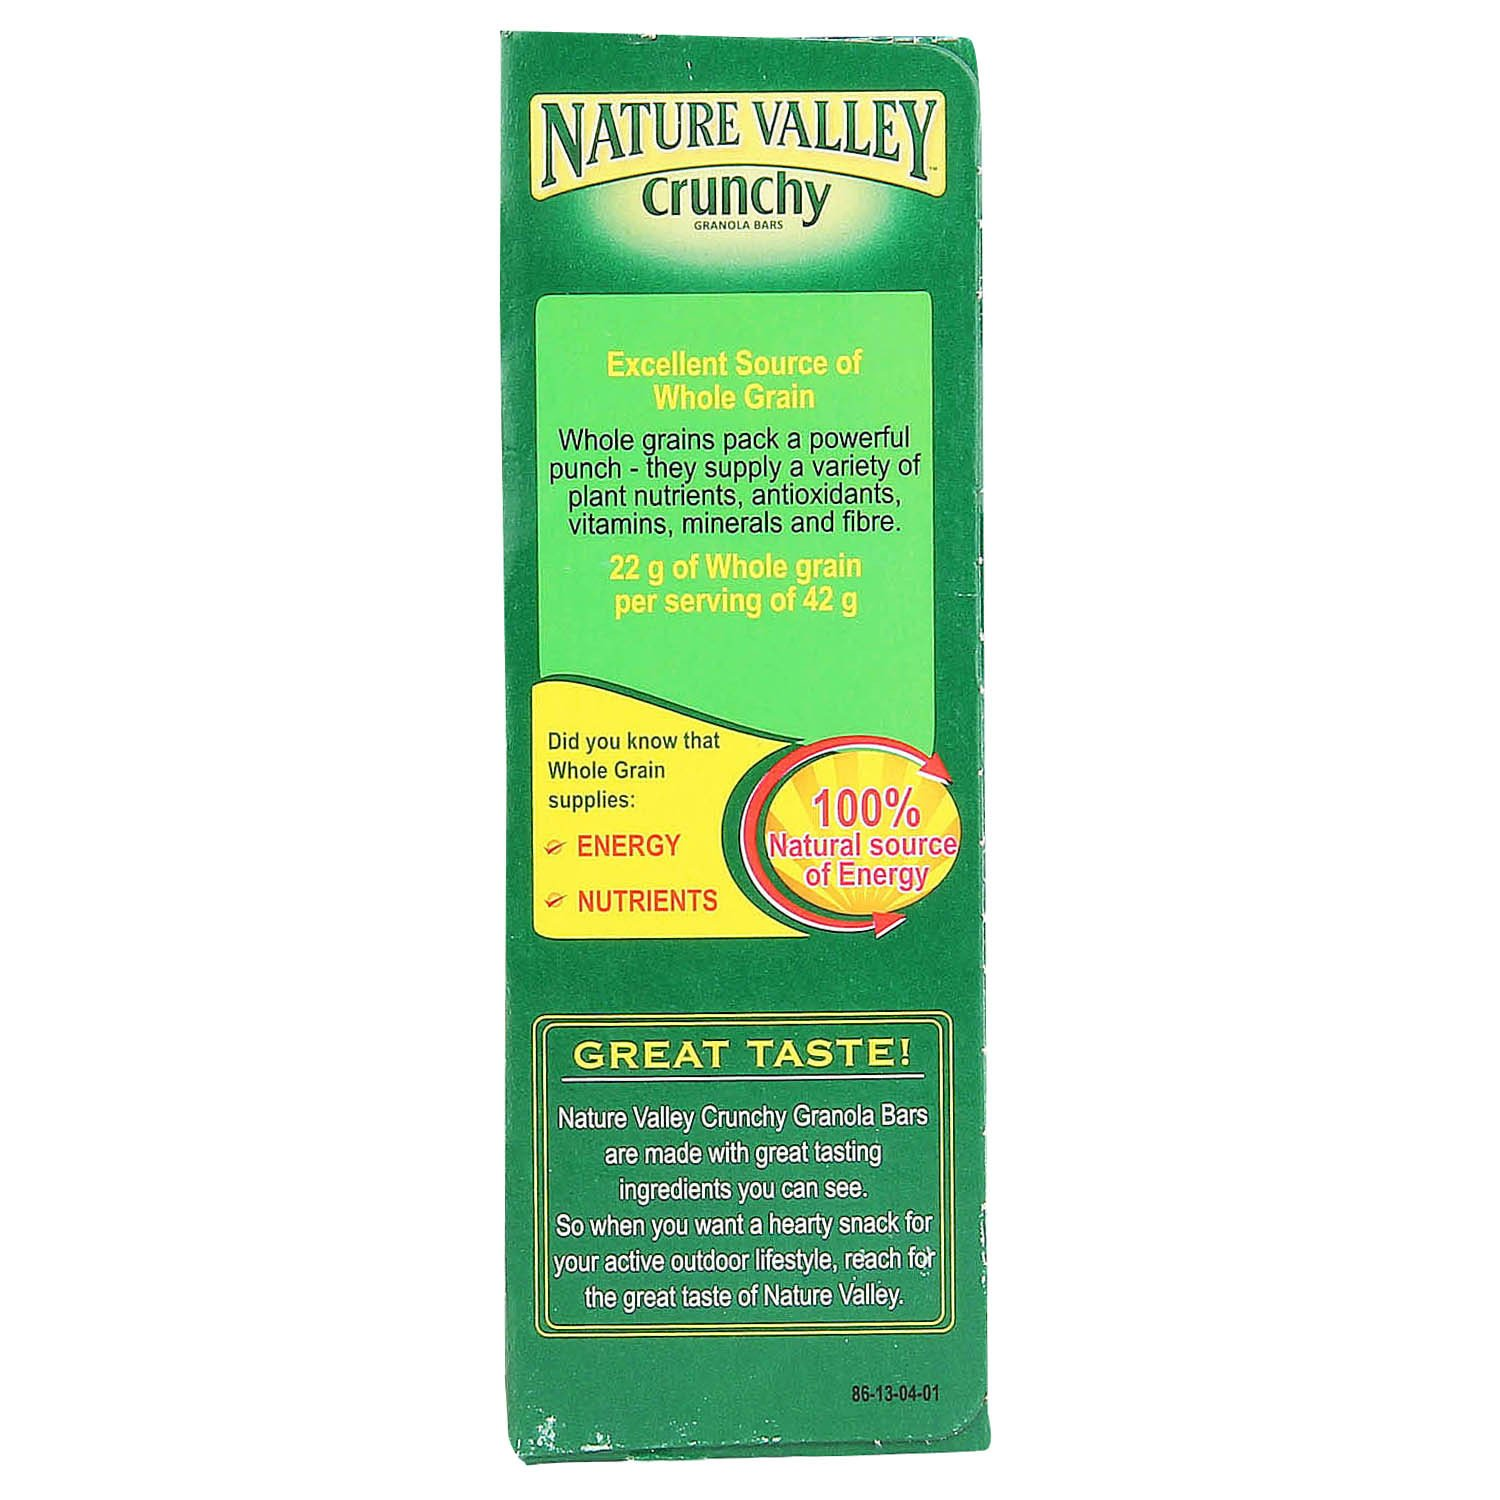 Are Nature Valley Granola Bars Crunchy Good For You